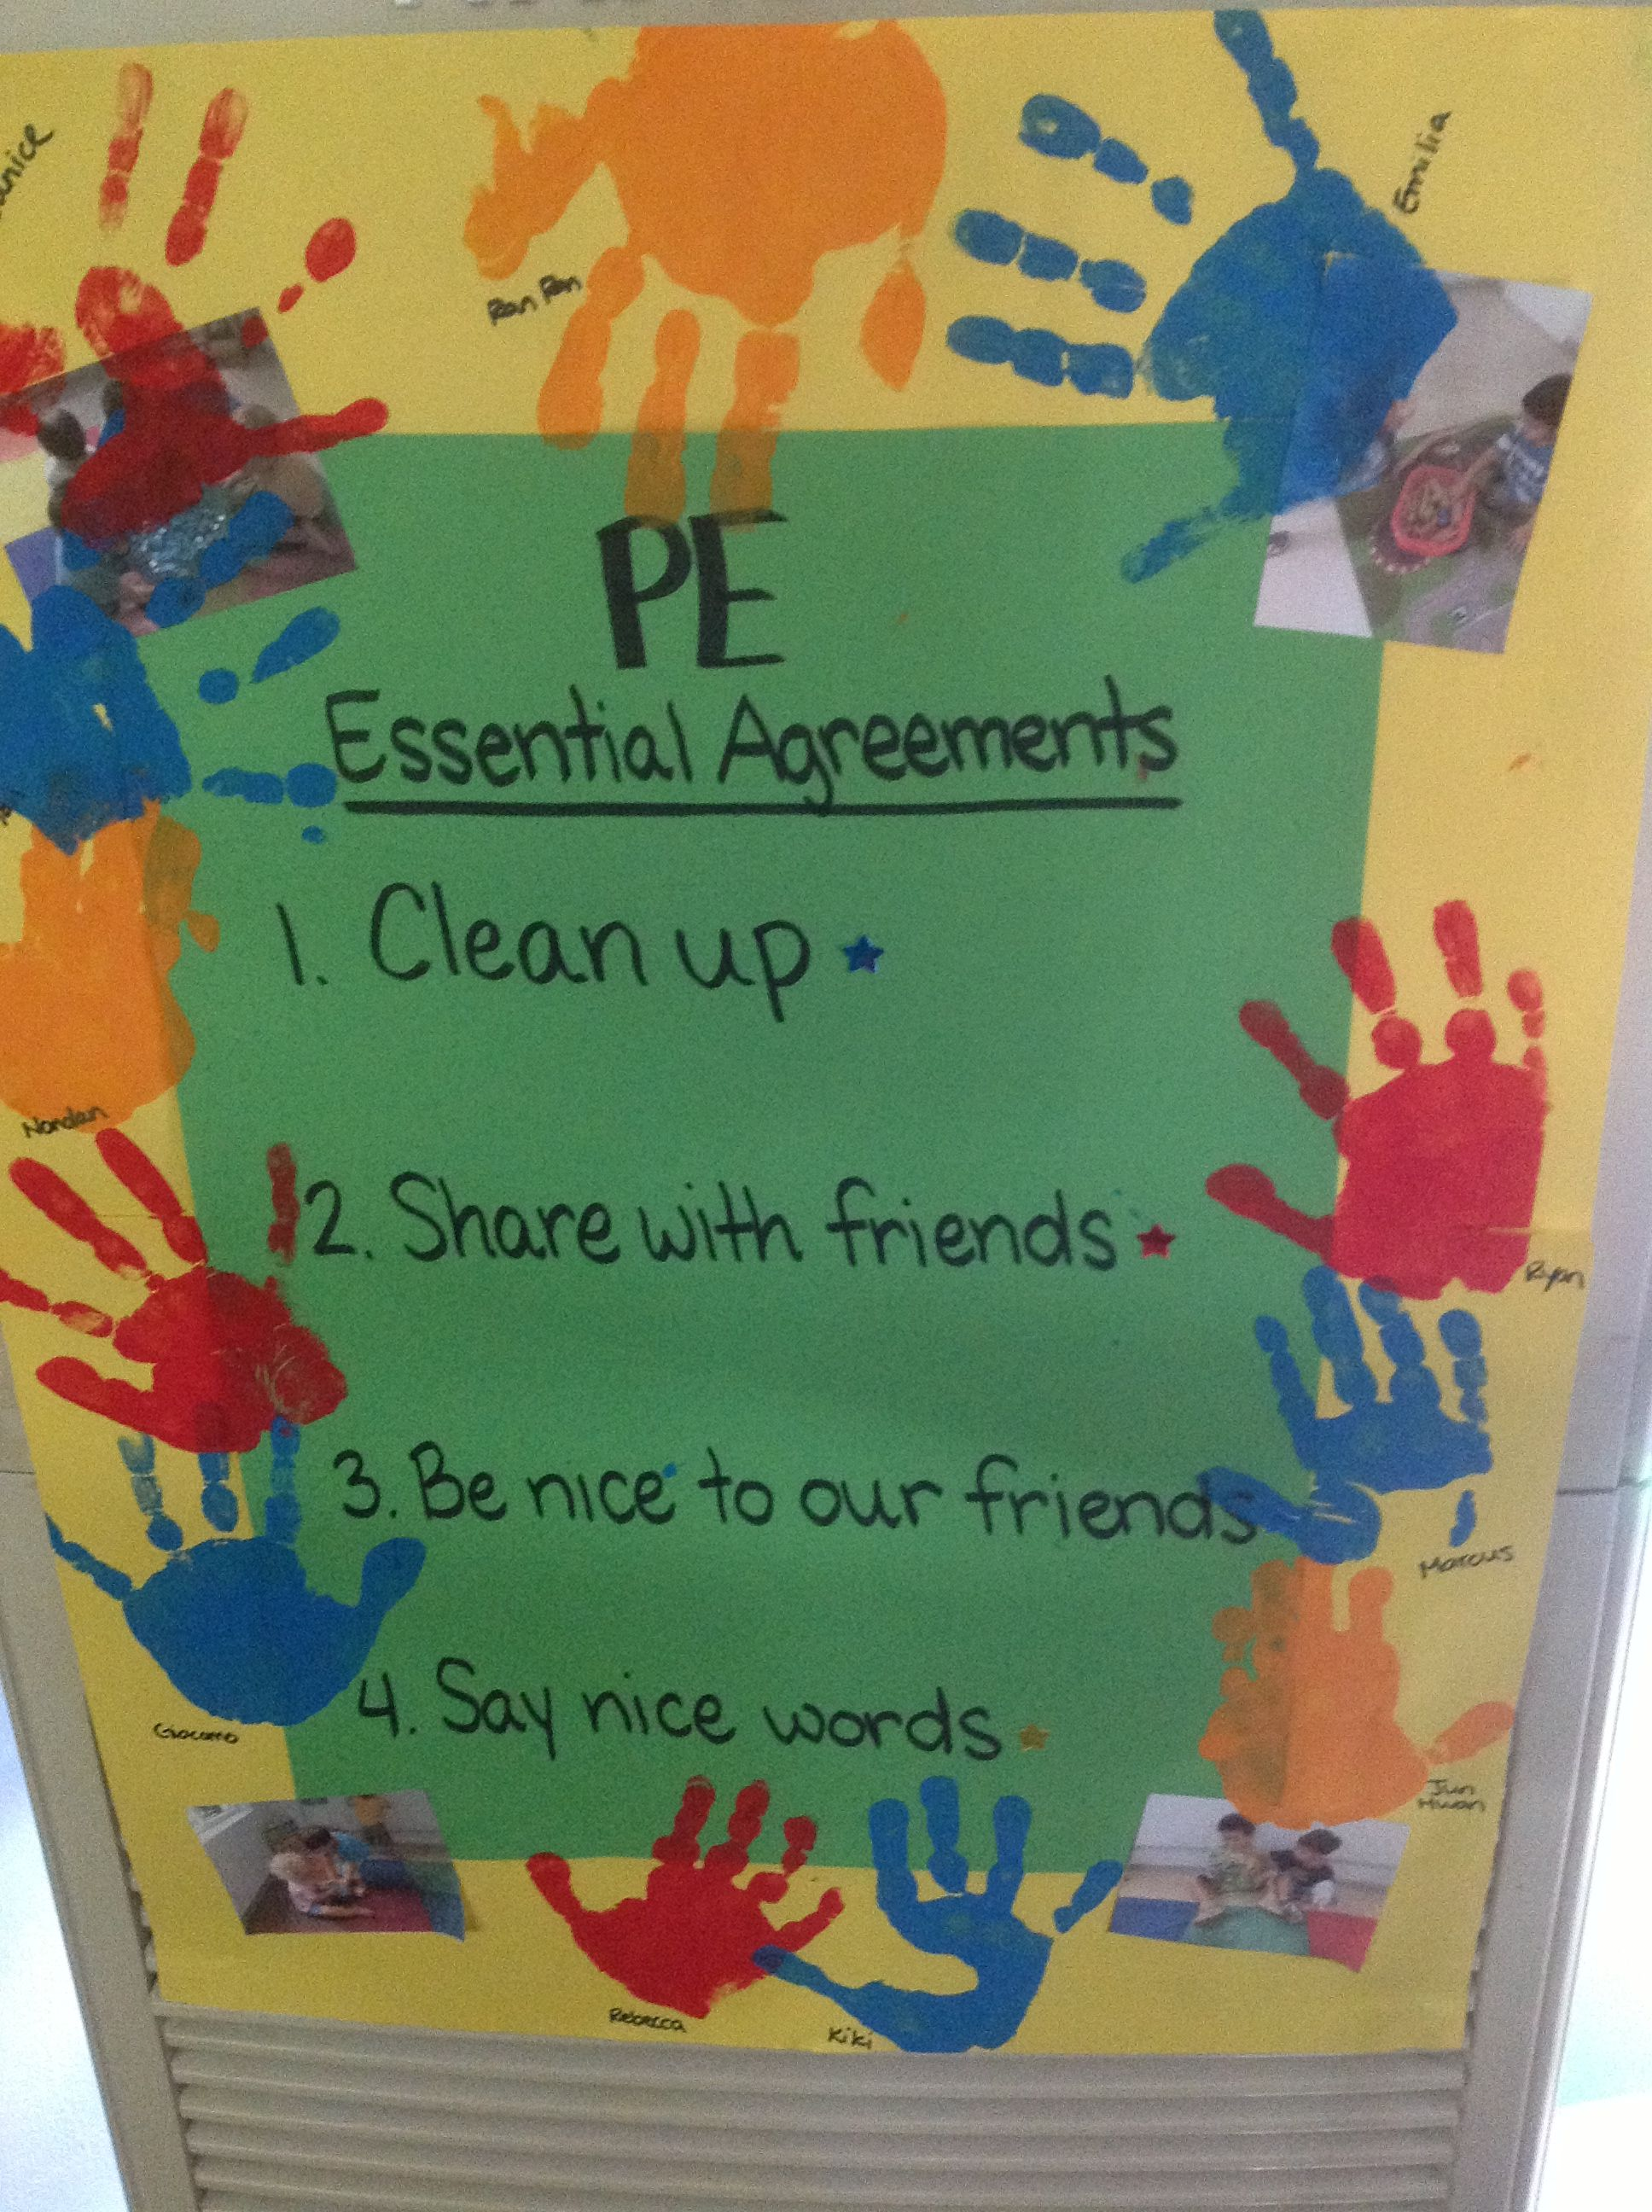 Essential Agreements. Pyp Classroom Environment